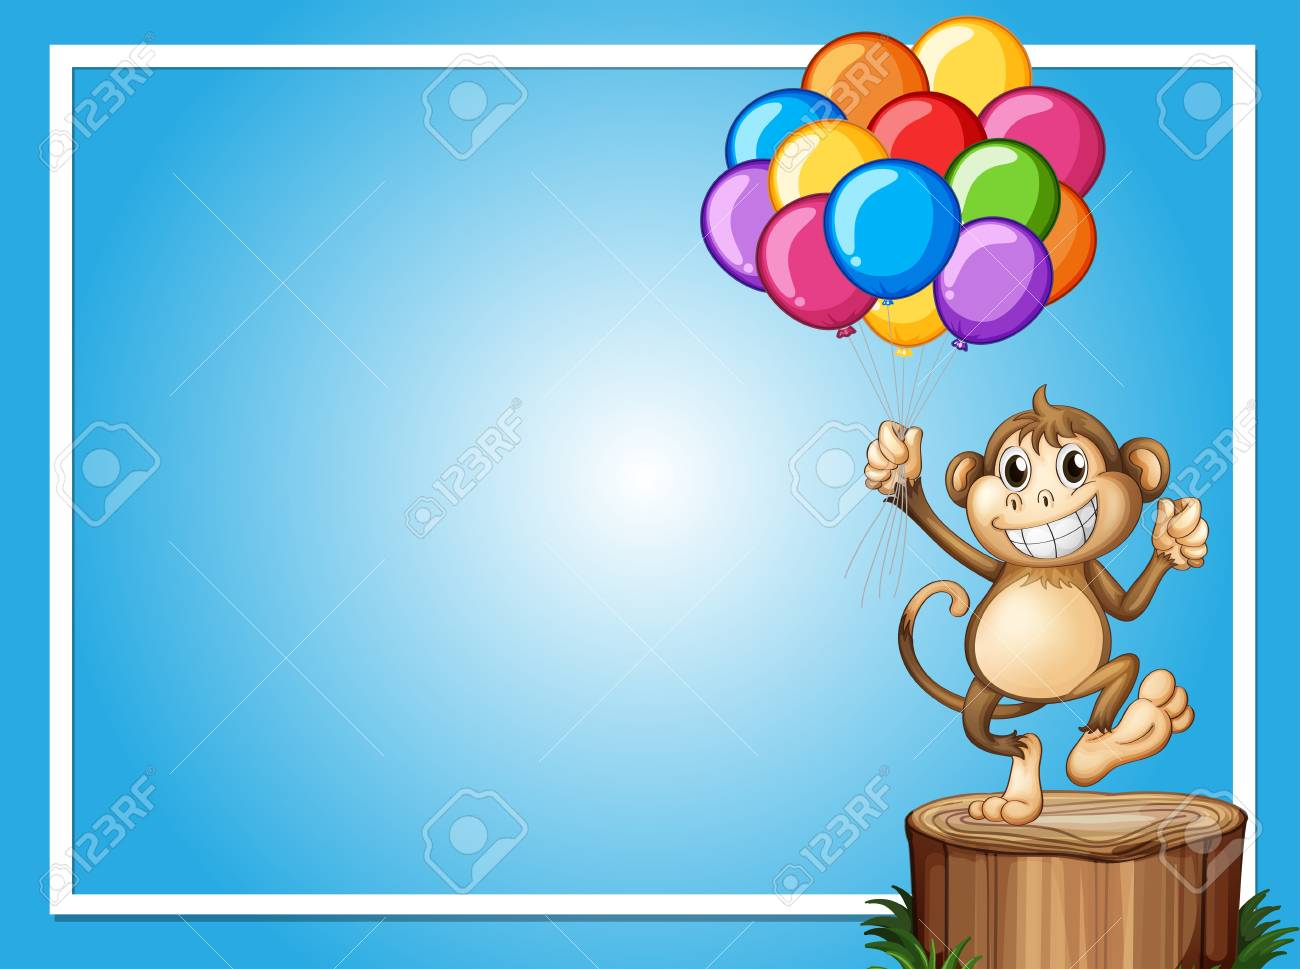 Border Template With Happy Monkey And Colorful Balloons Illustration ...